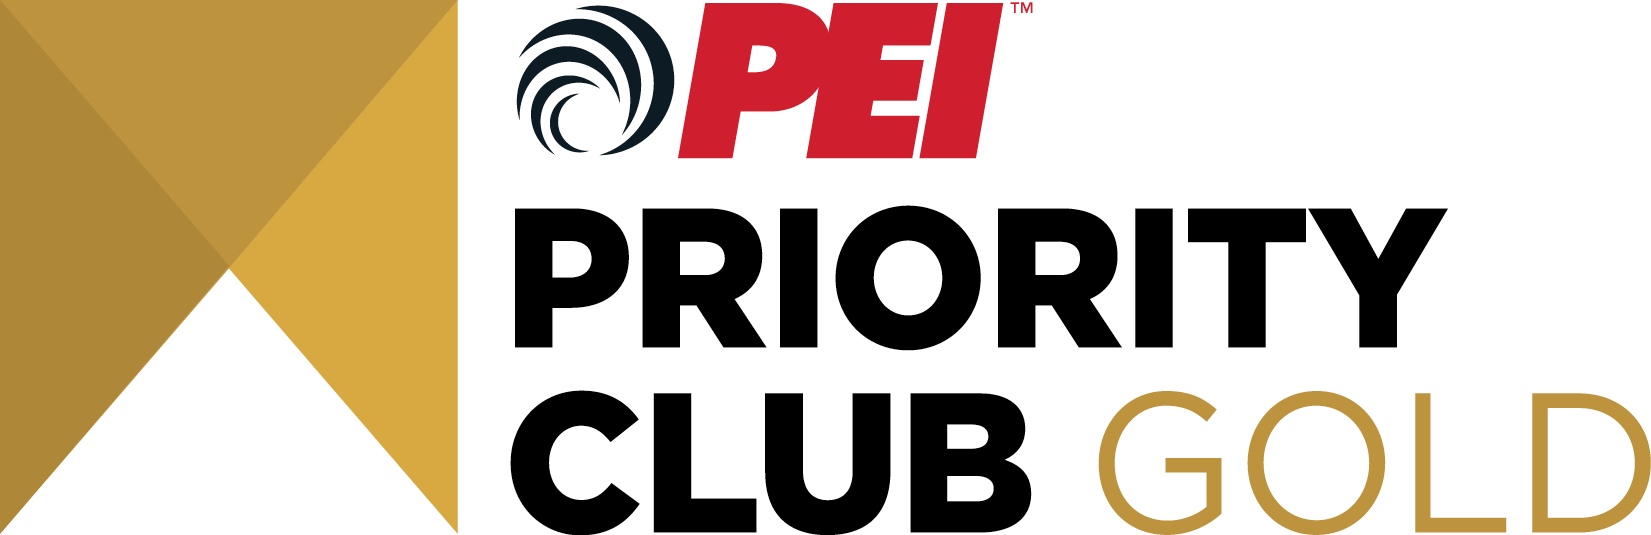 2-13-20-priority-club-gold-large-logo.png